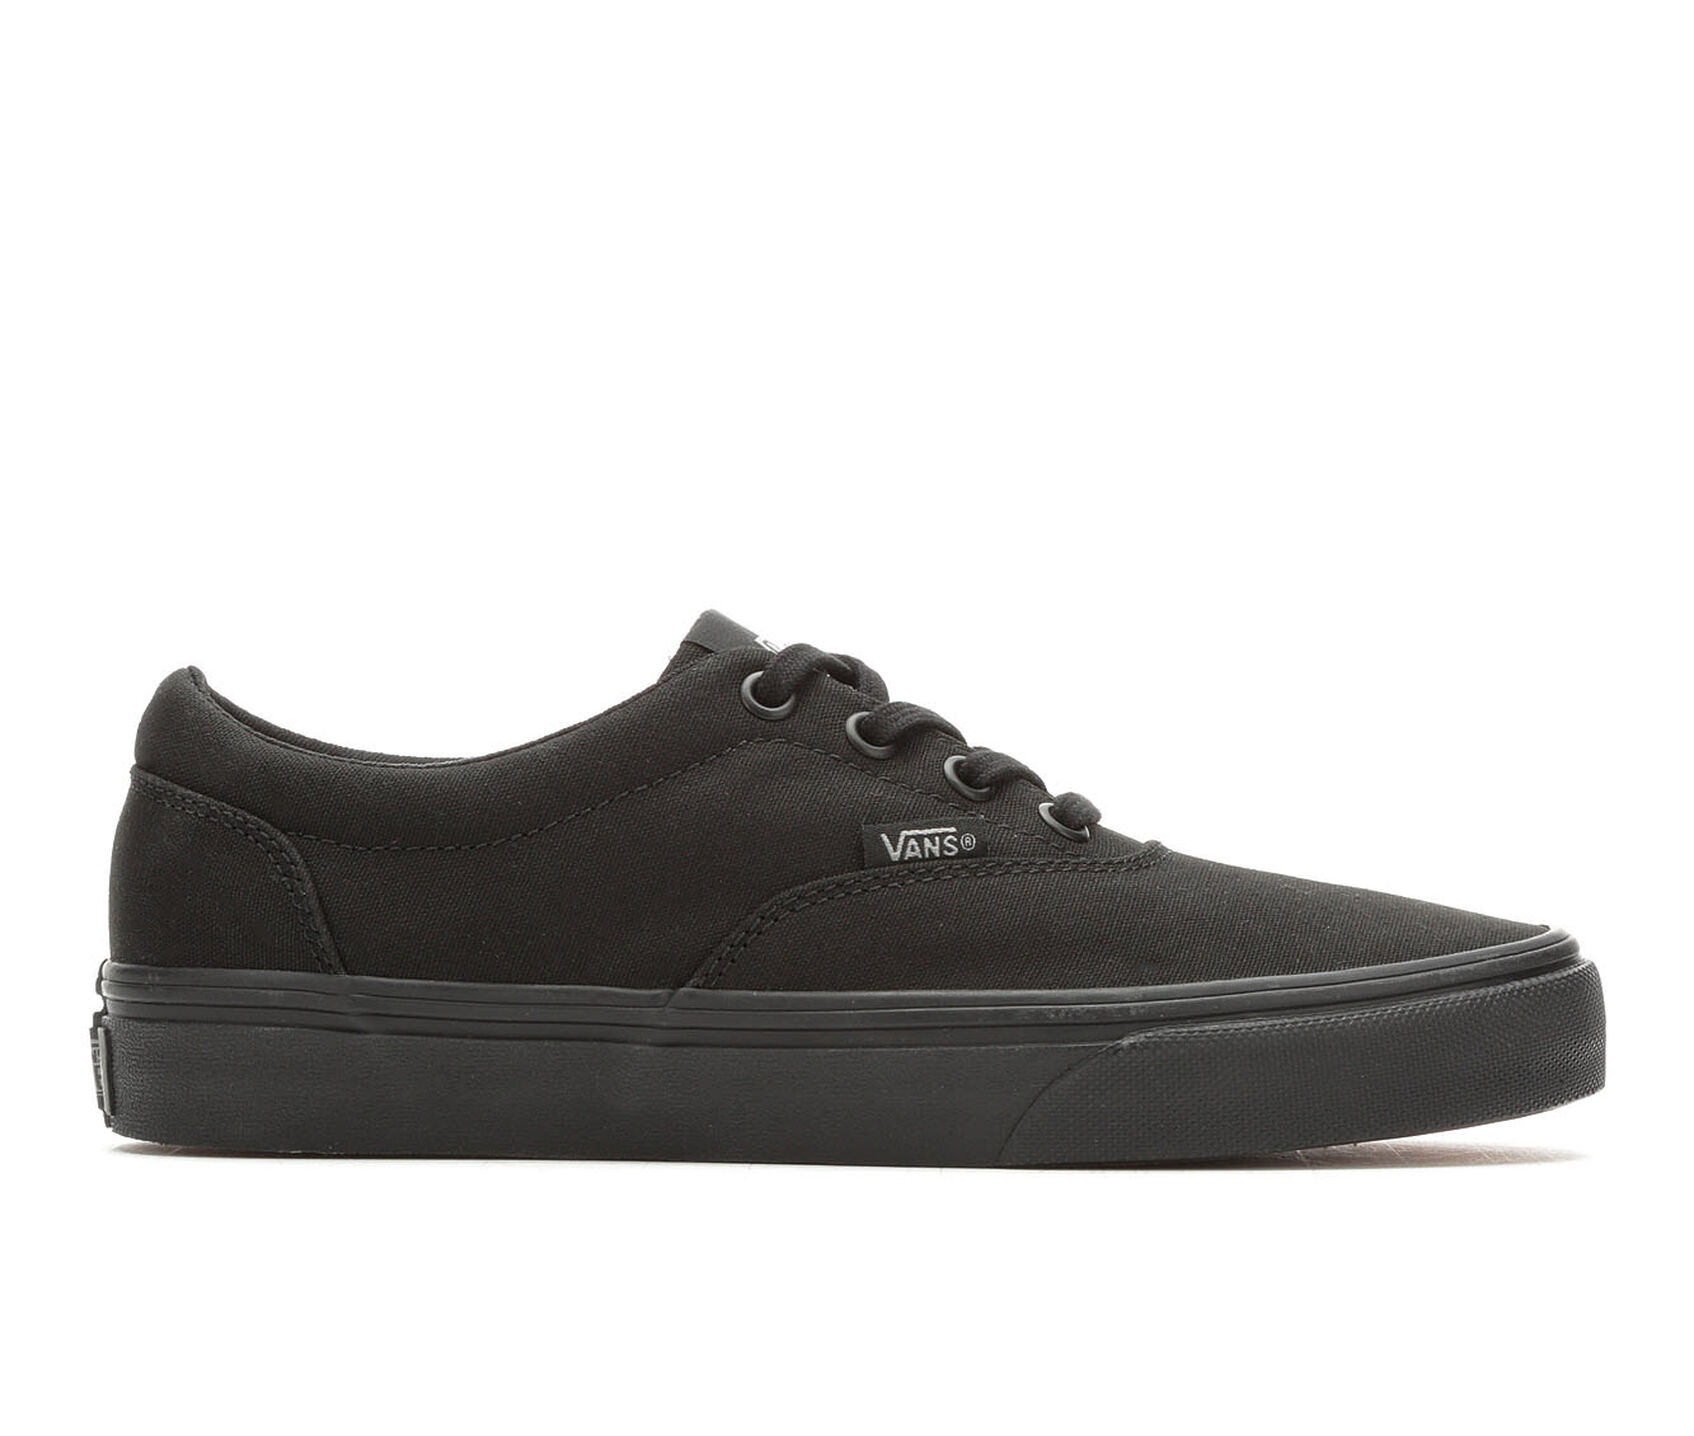 79a65db64a Women's Vans Doheny Skate Shoes